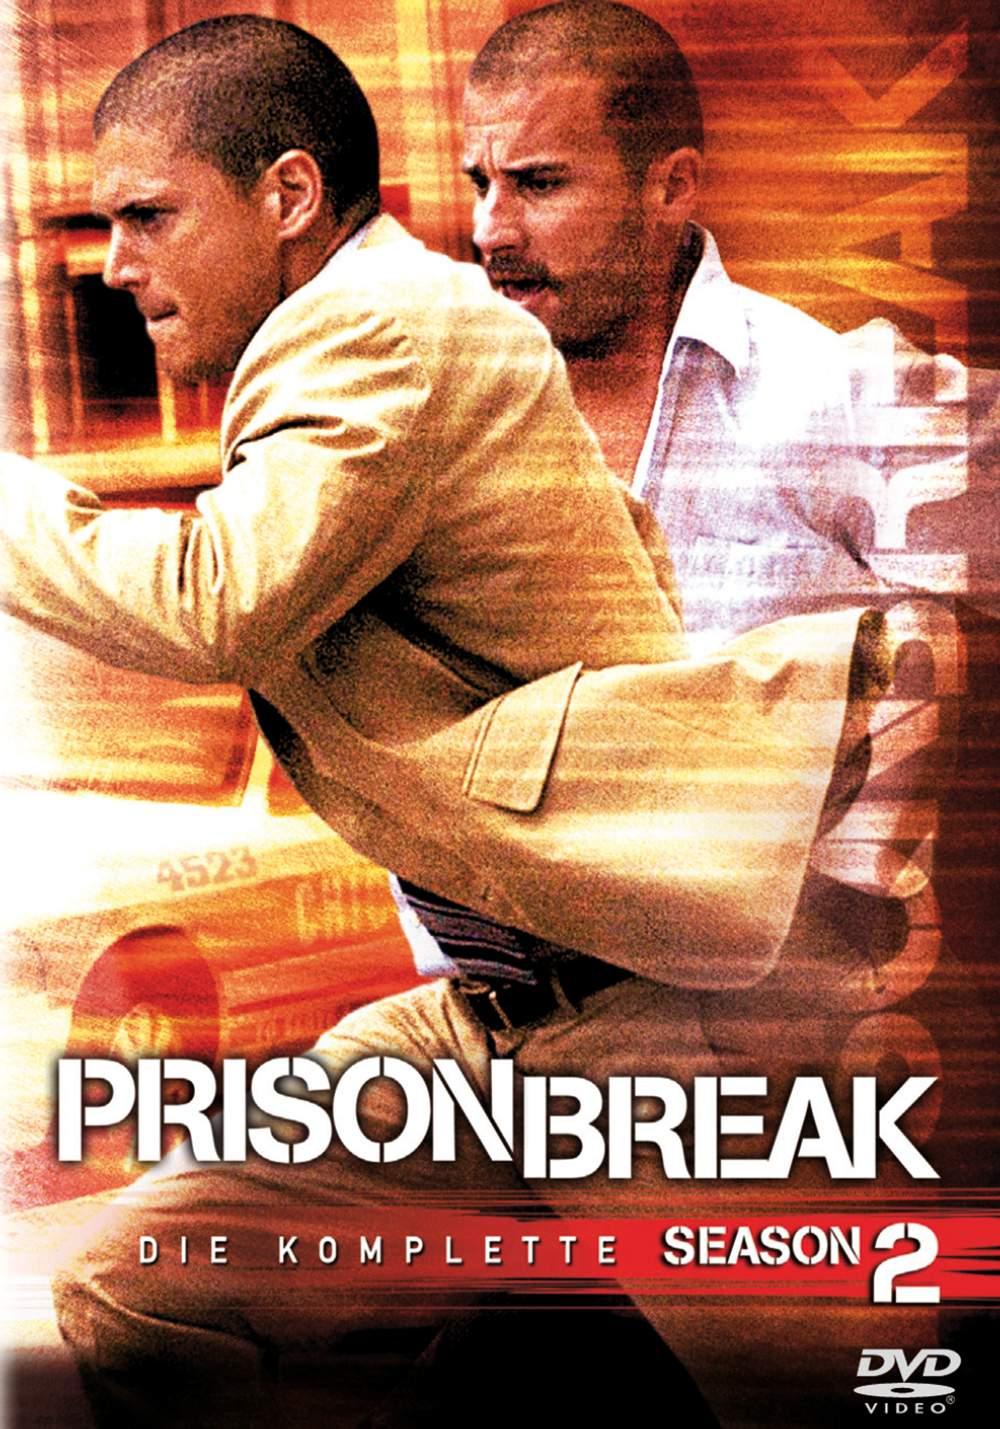 Prison Break Staffel 5 Folge 2 Stream